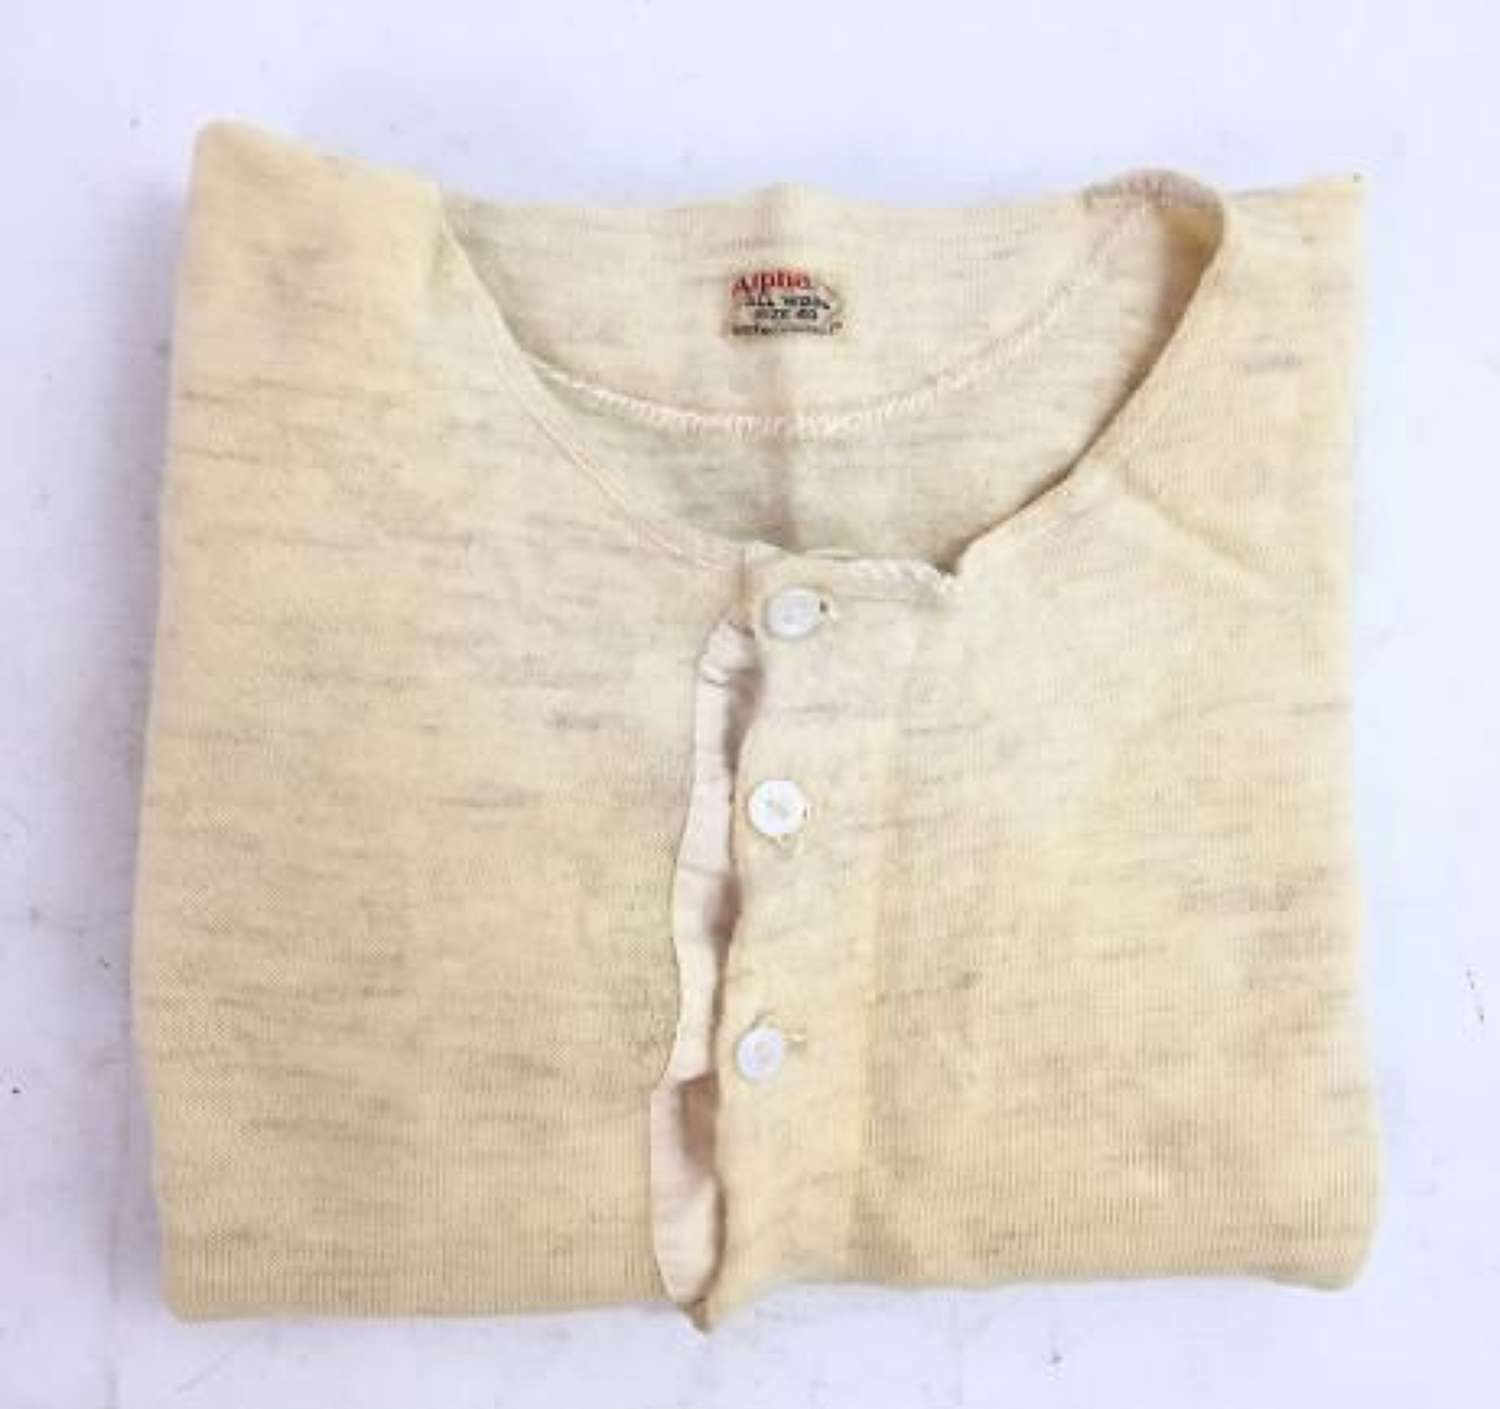 Original 1940s Men's Undershirt by 'Alpha' - Size 40 (1)